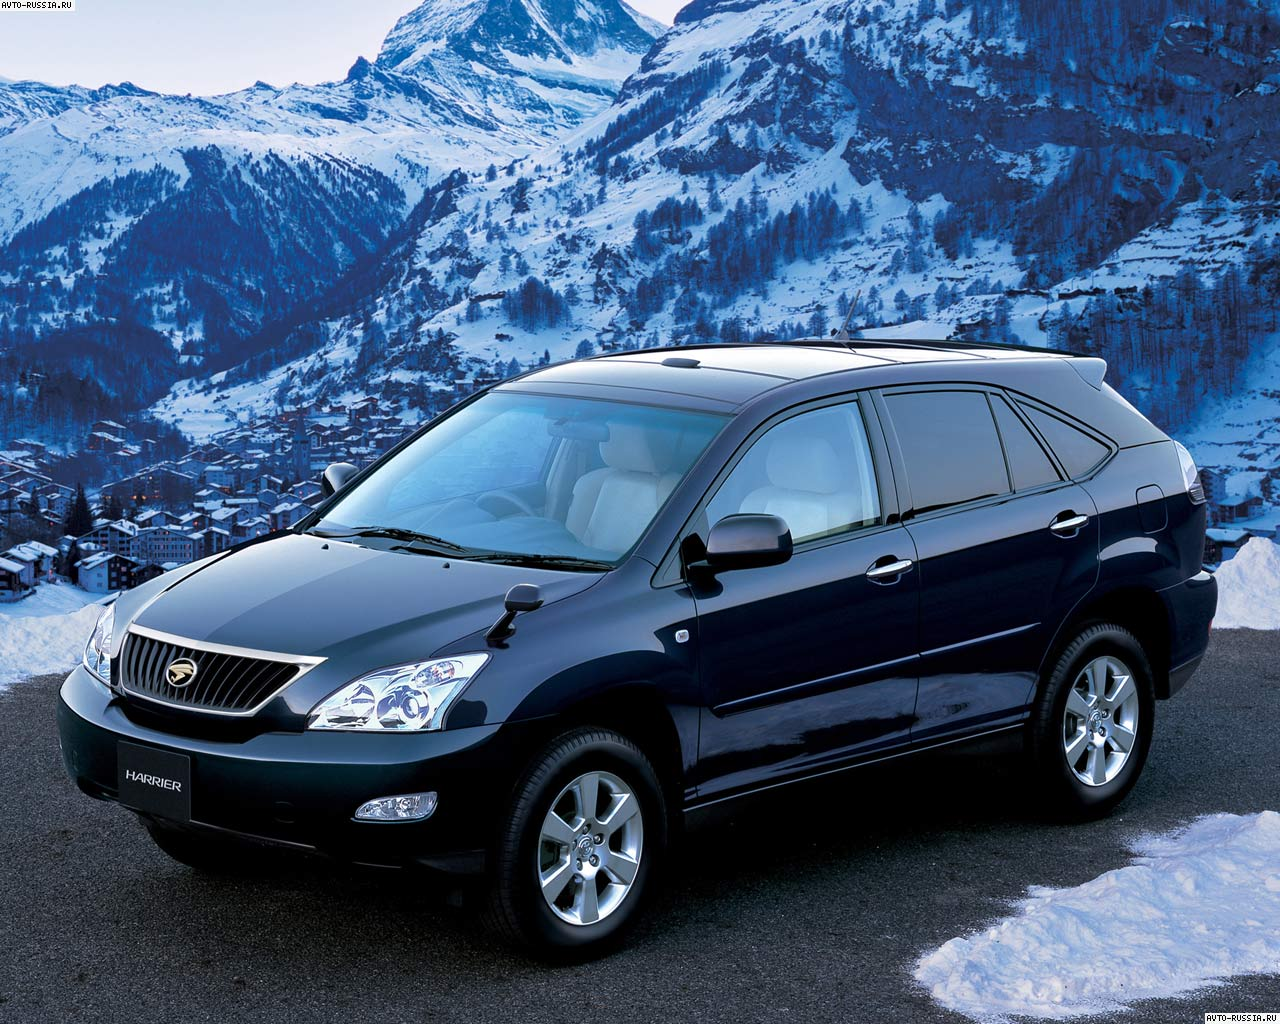 Toyota Harrier: 11 фото